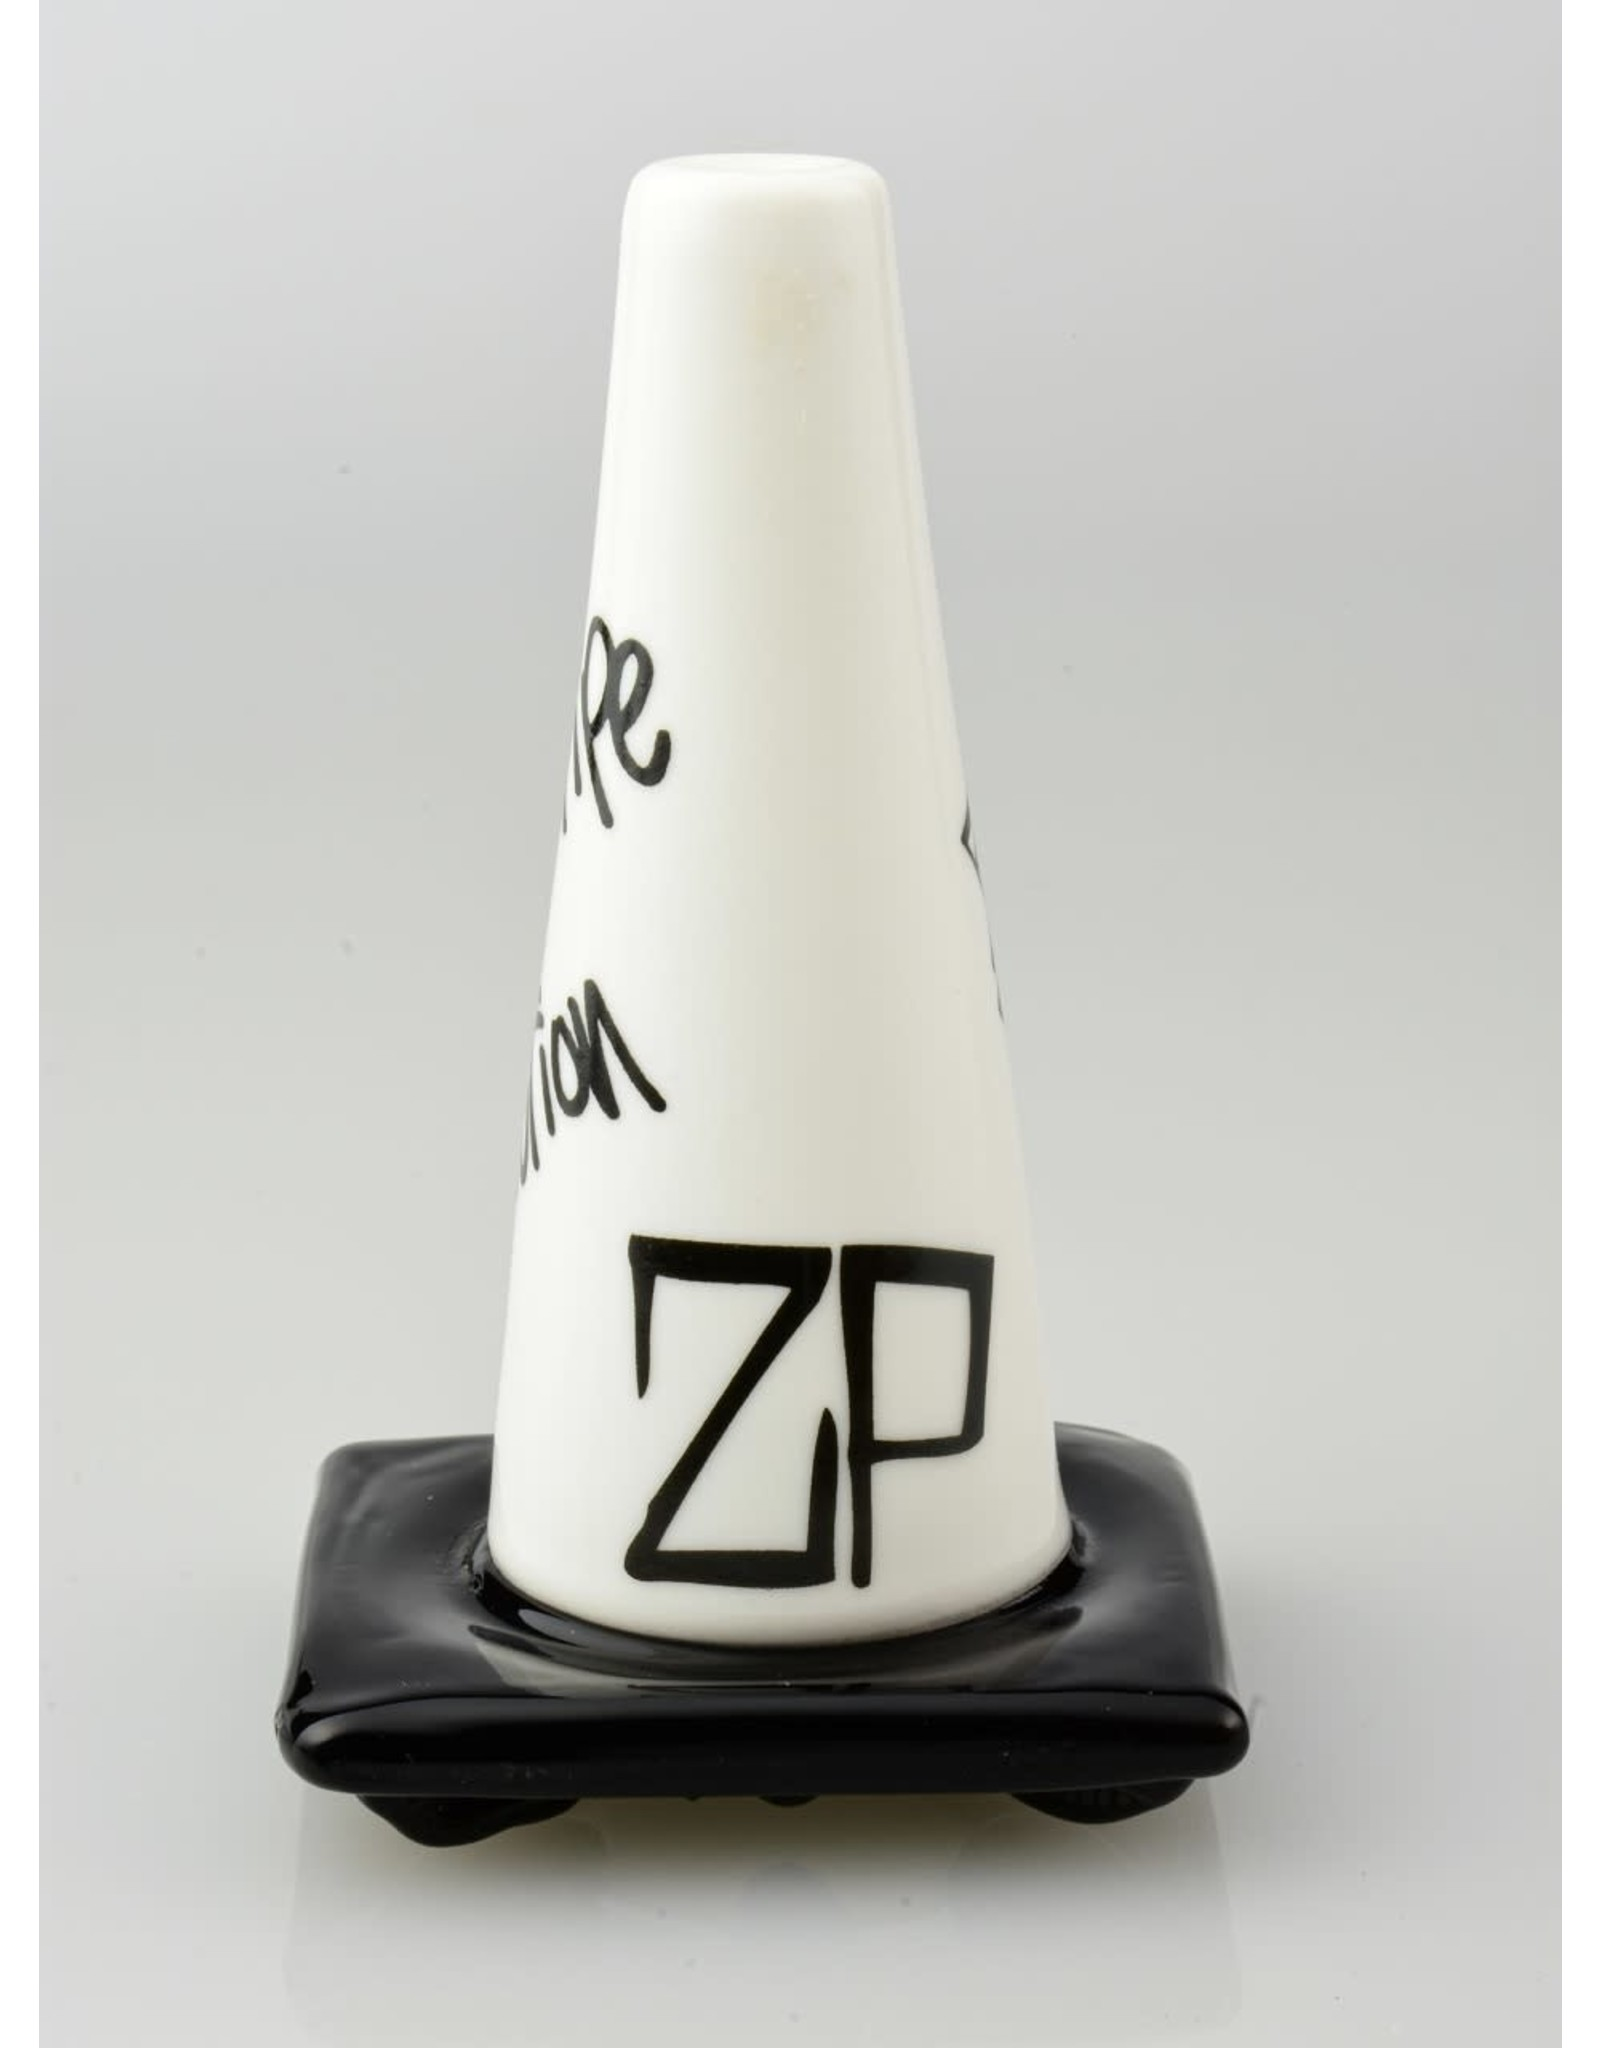 Lord Glass Pipe Revolution Lord x Zach P Collab White Sketch Construction Cone Pipe